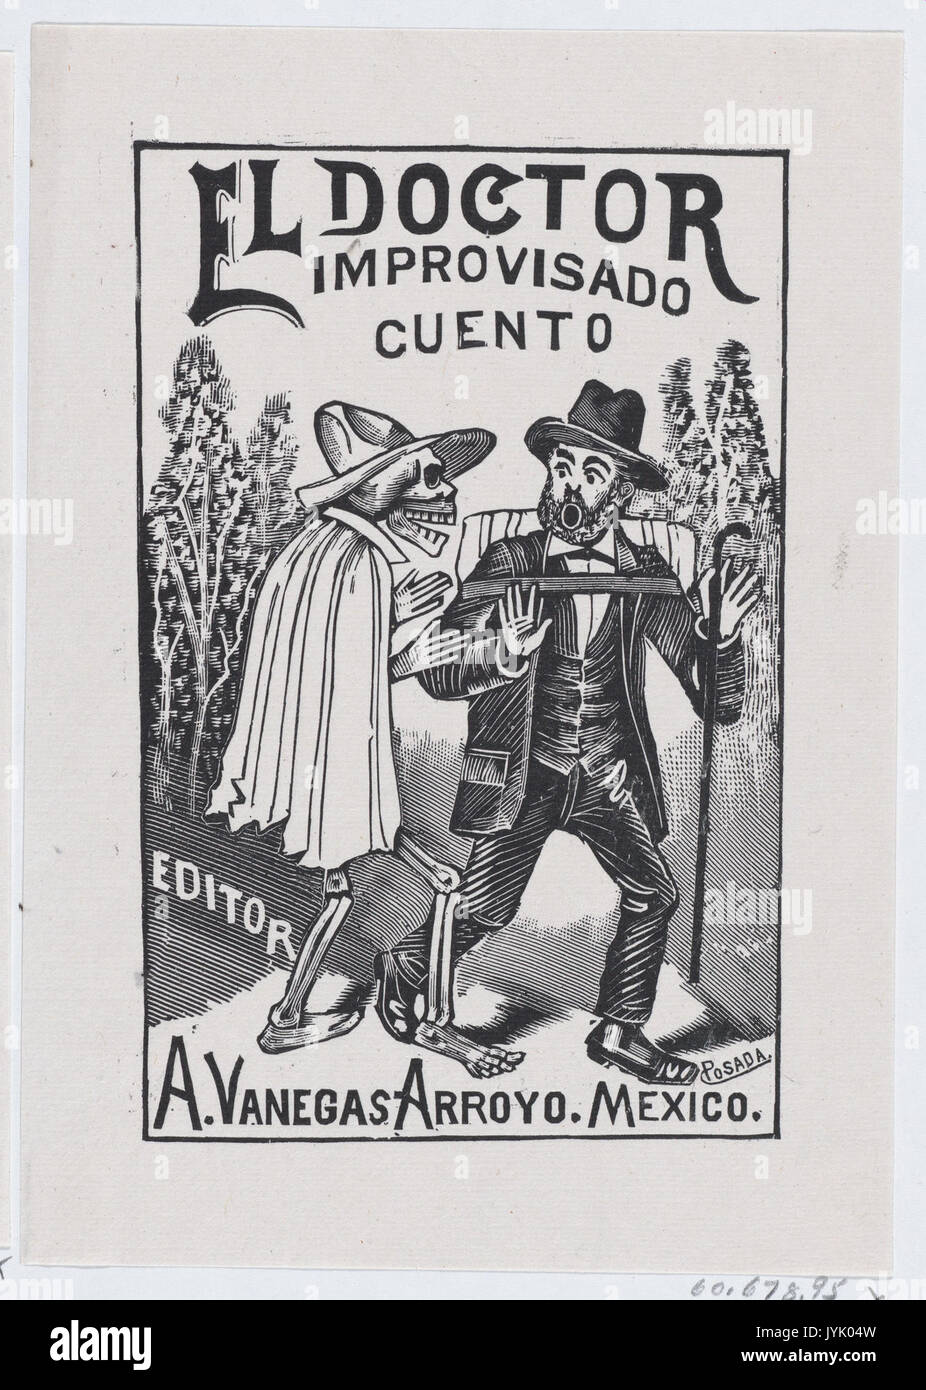 A Skeleton Wearing Cape Speaking To Frightened Man With Cane And Backpack